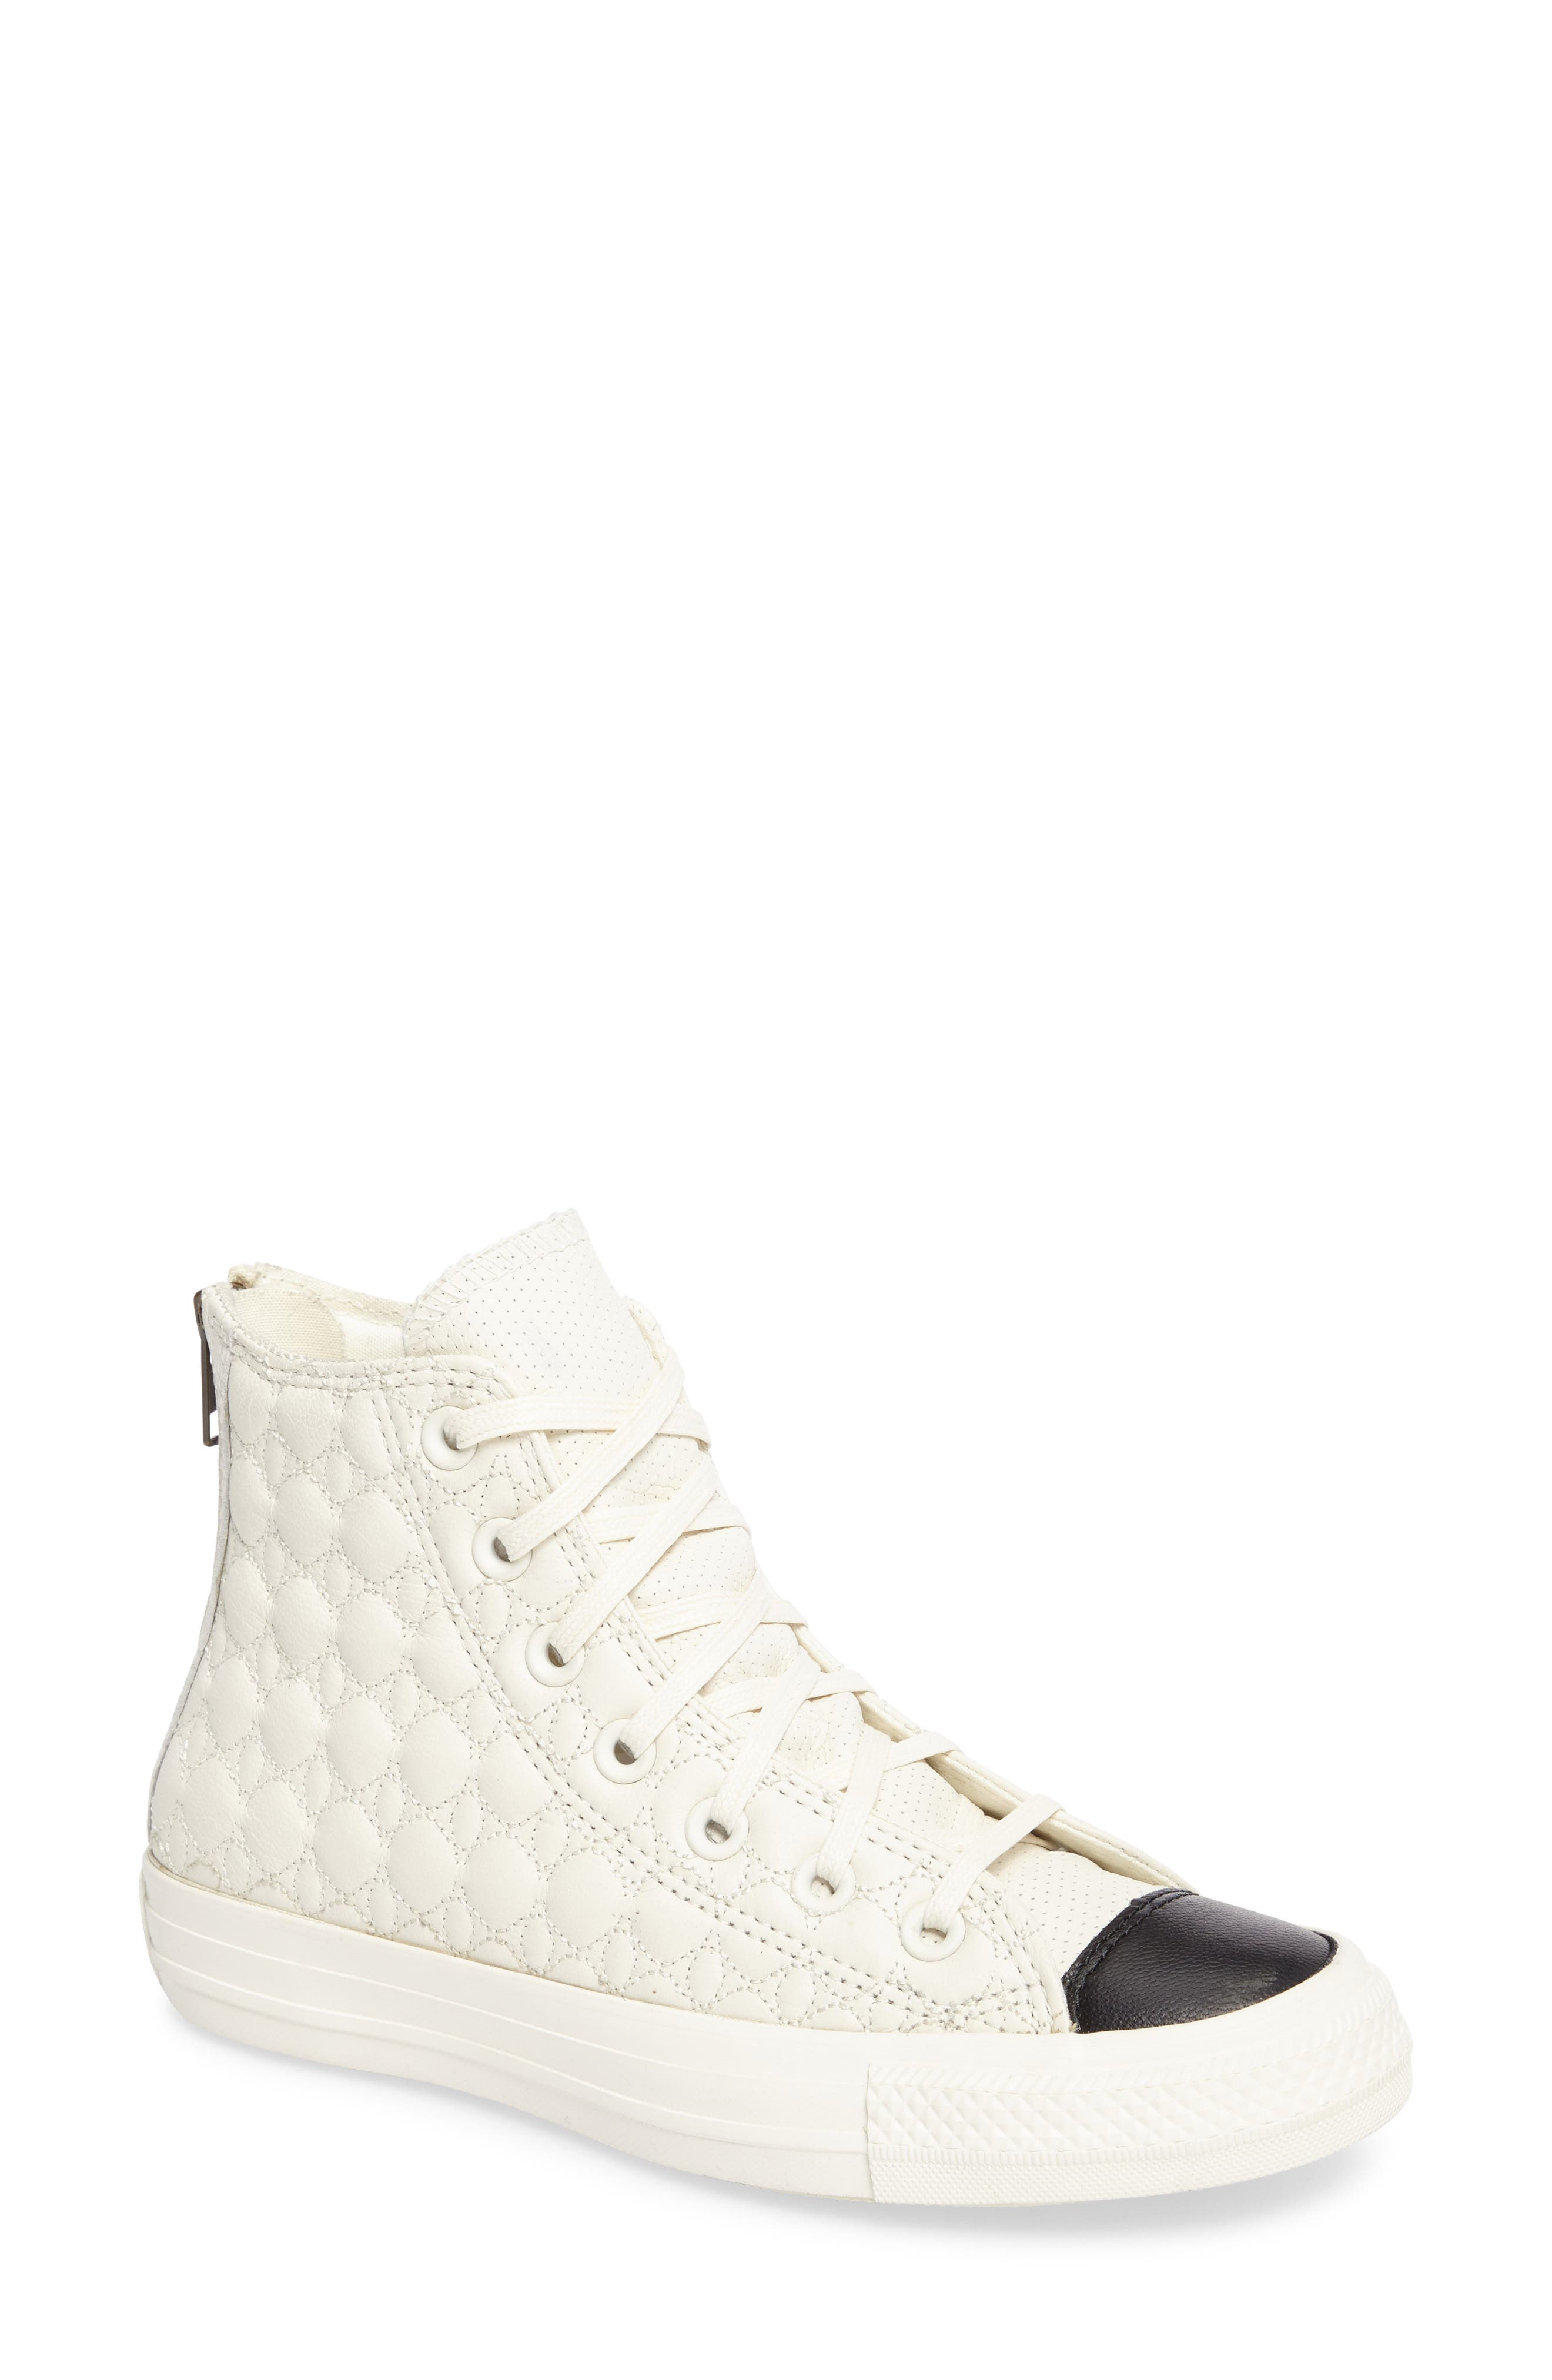 All Star<sup>®</sup> Quilted High Top Sneaker,                             Main thumbnail 1, color,